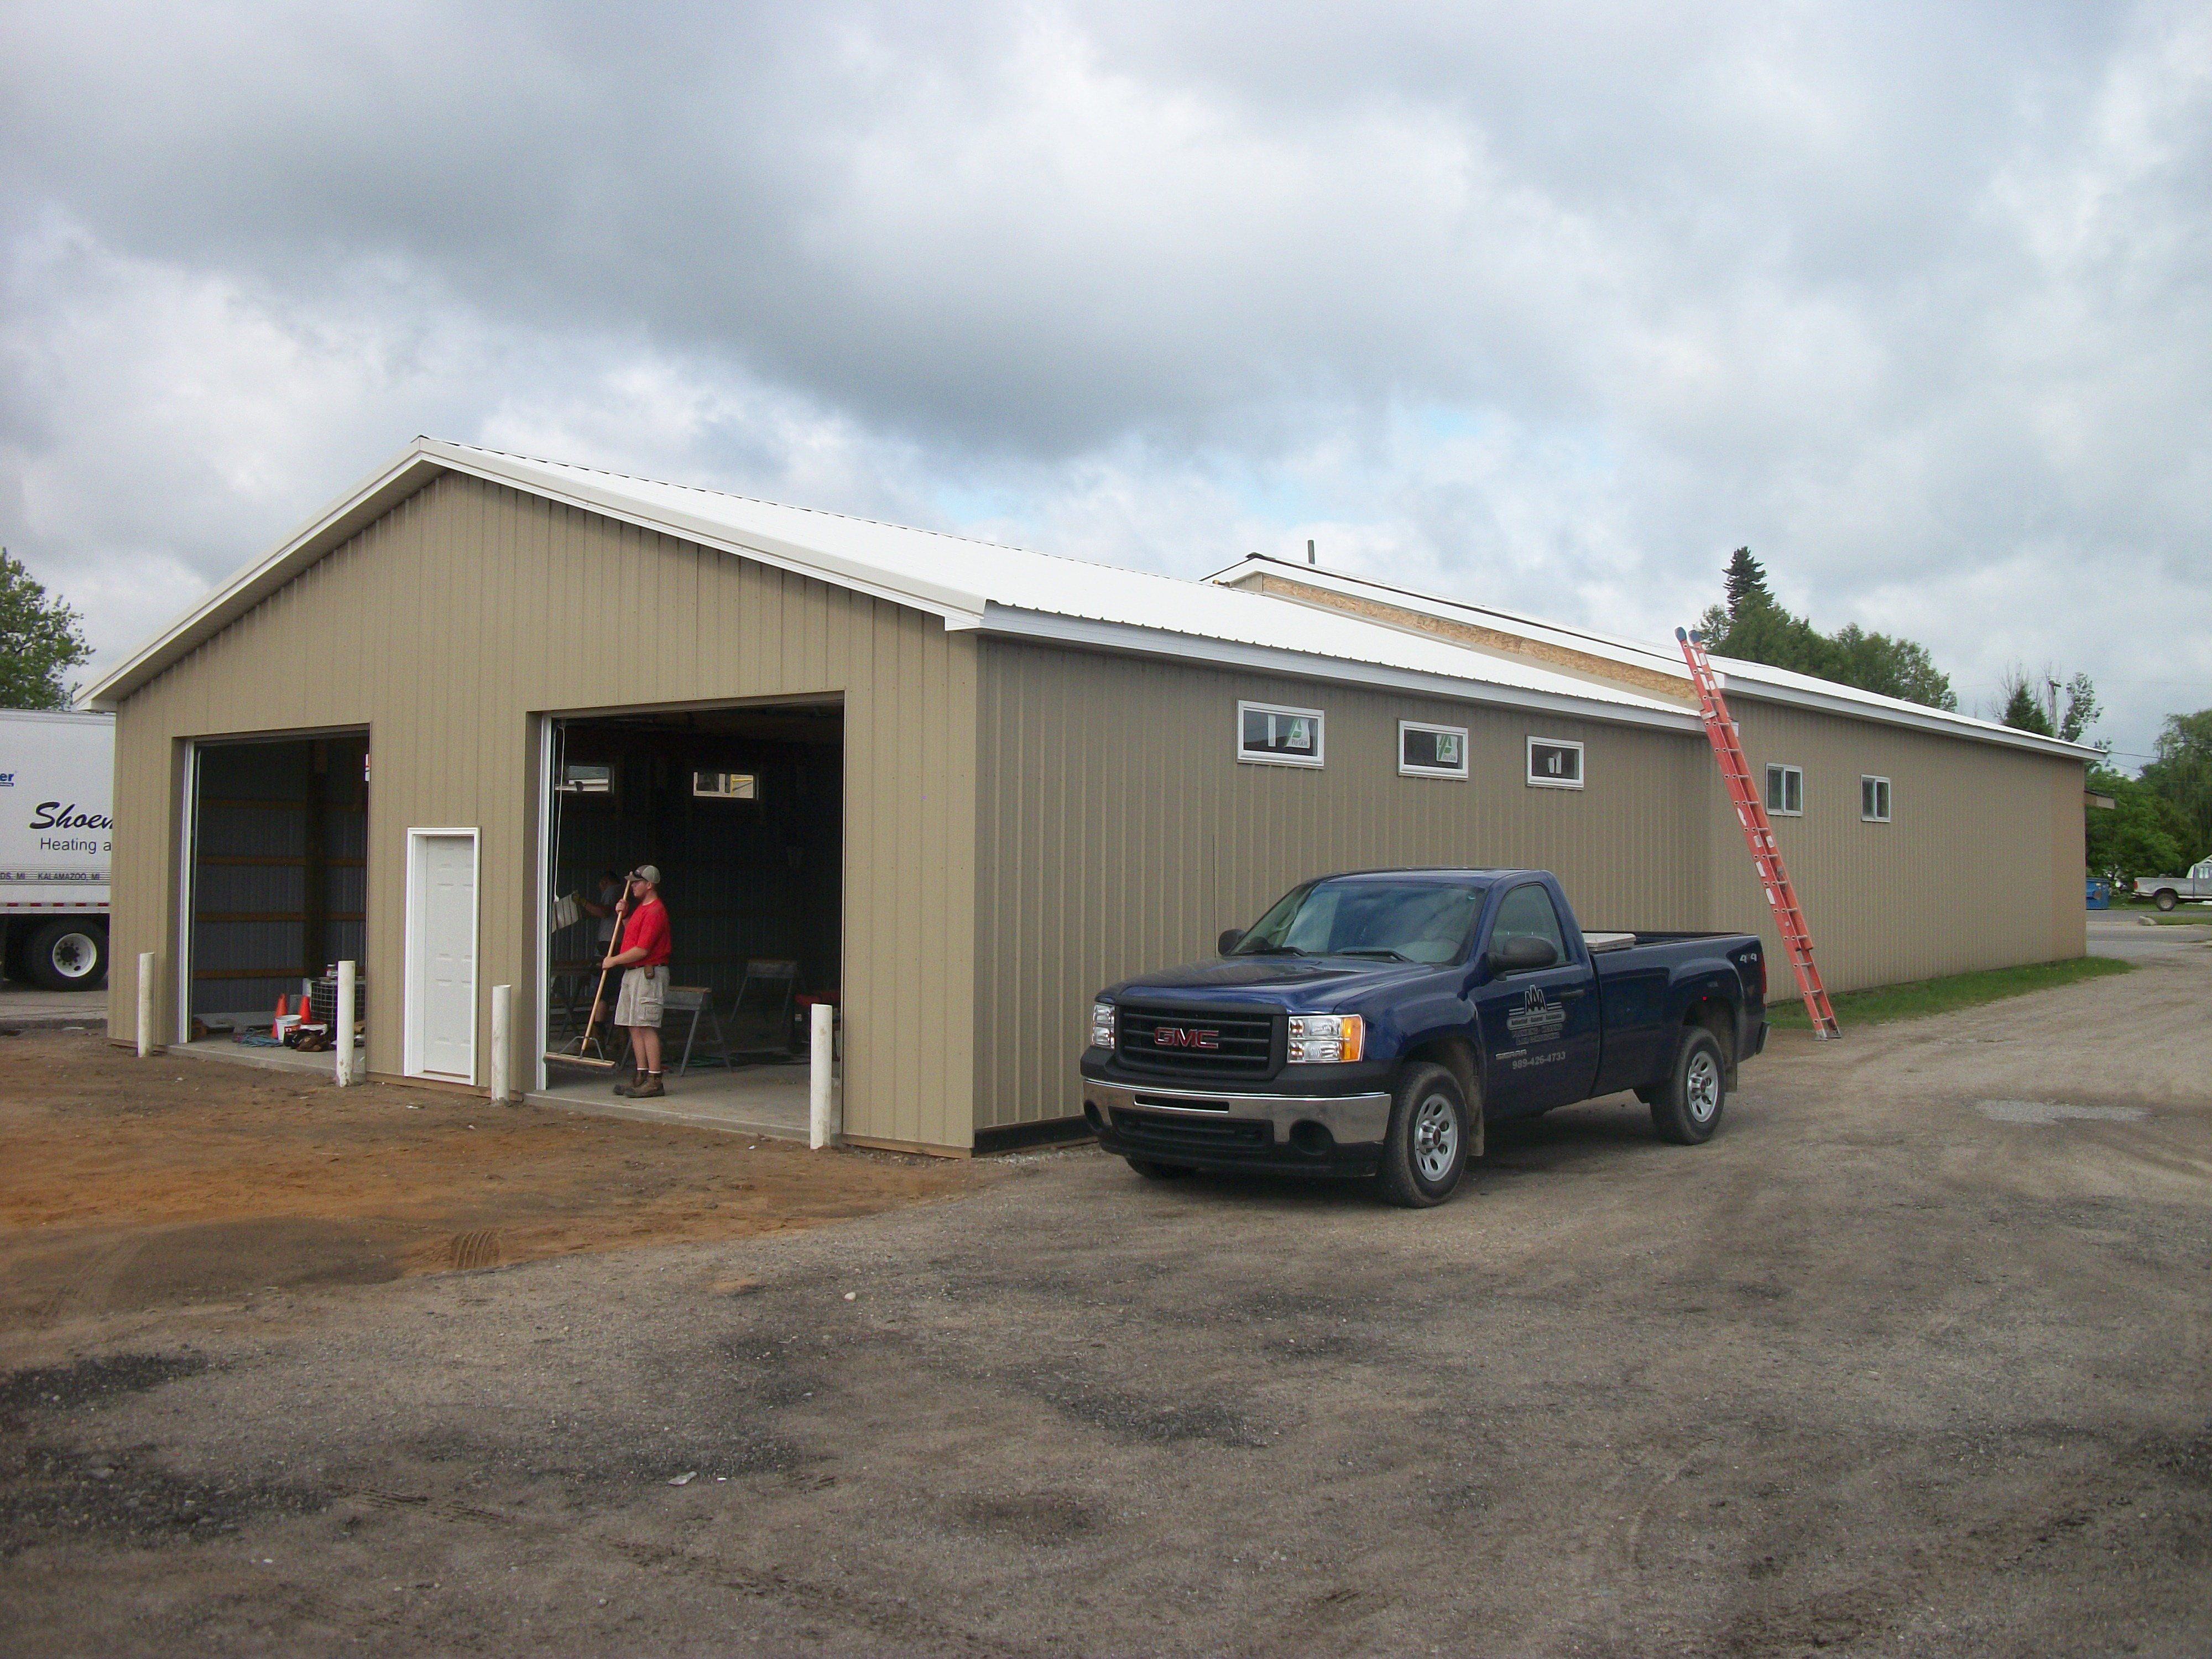 Aaa pole barn addition l dan french builders for Adding onto a pole barn